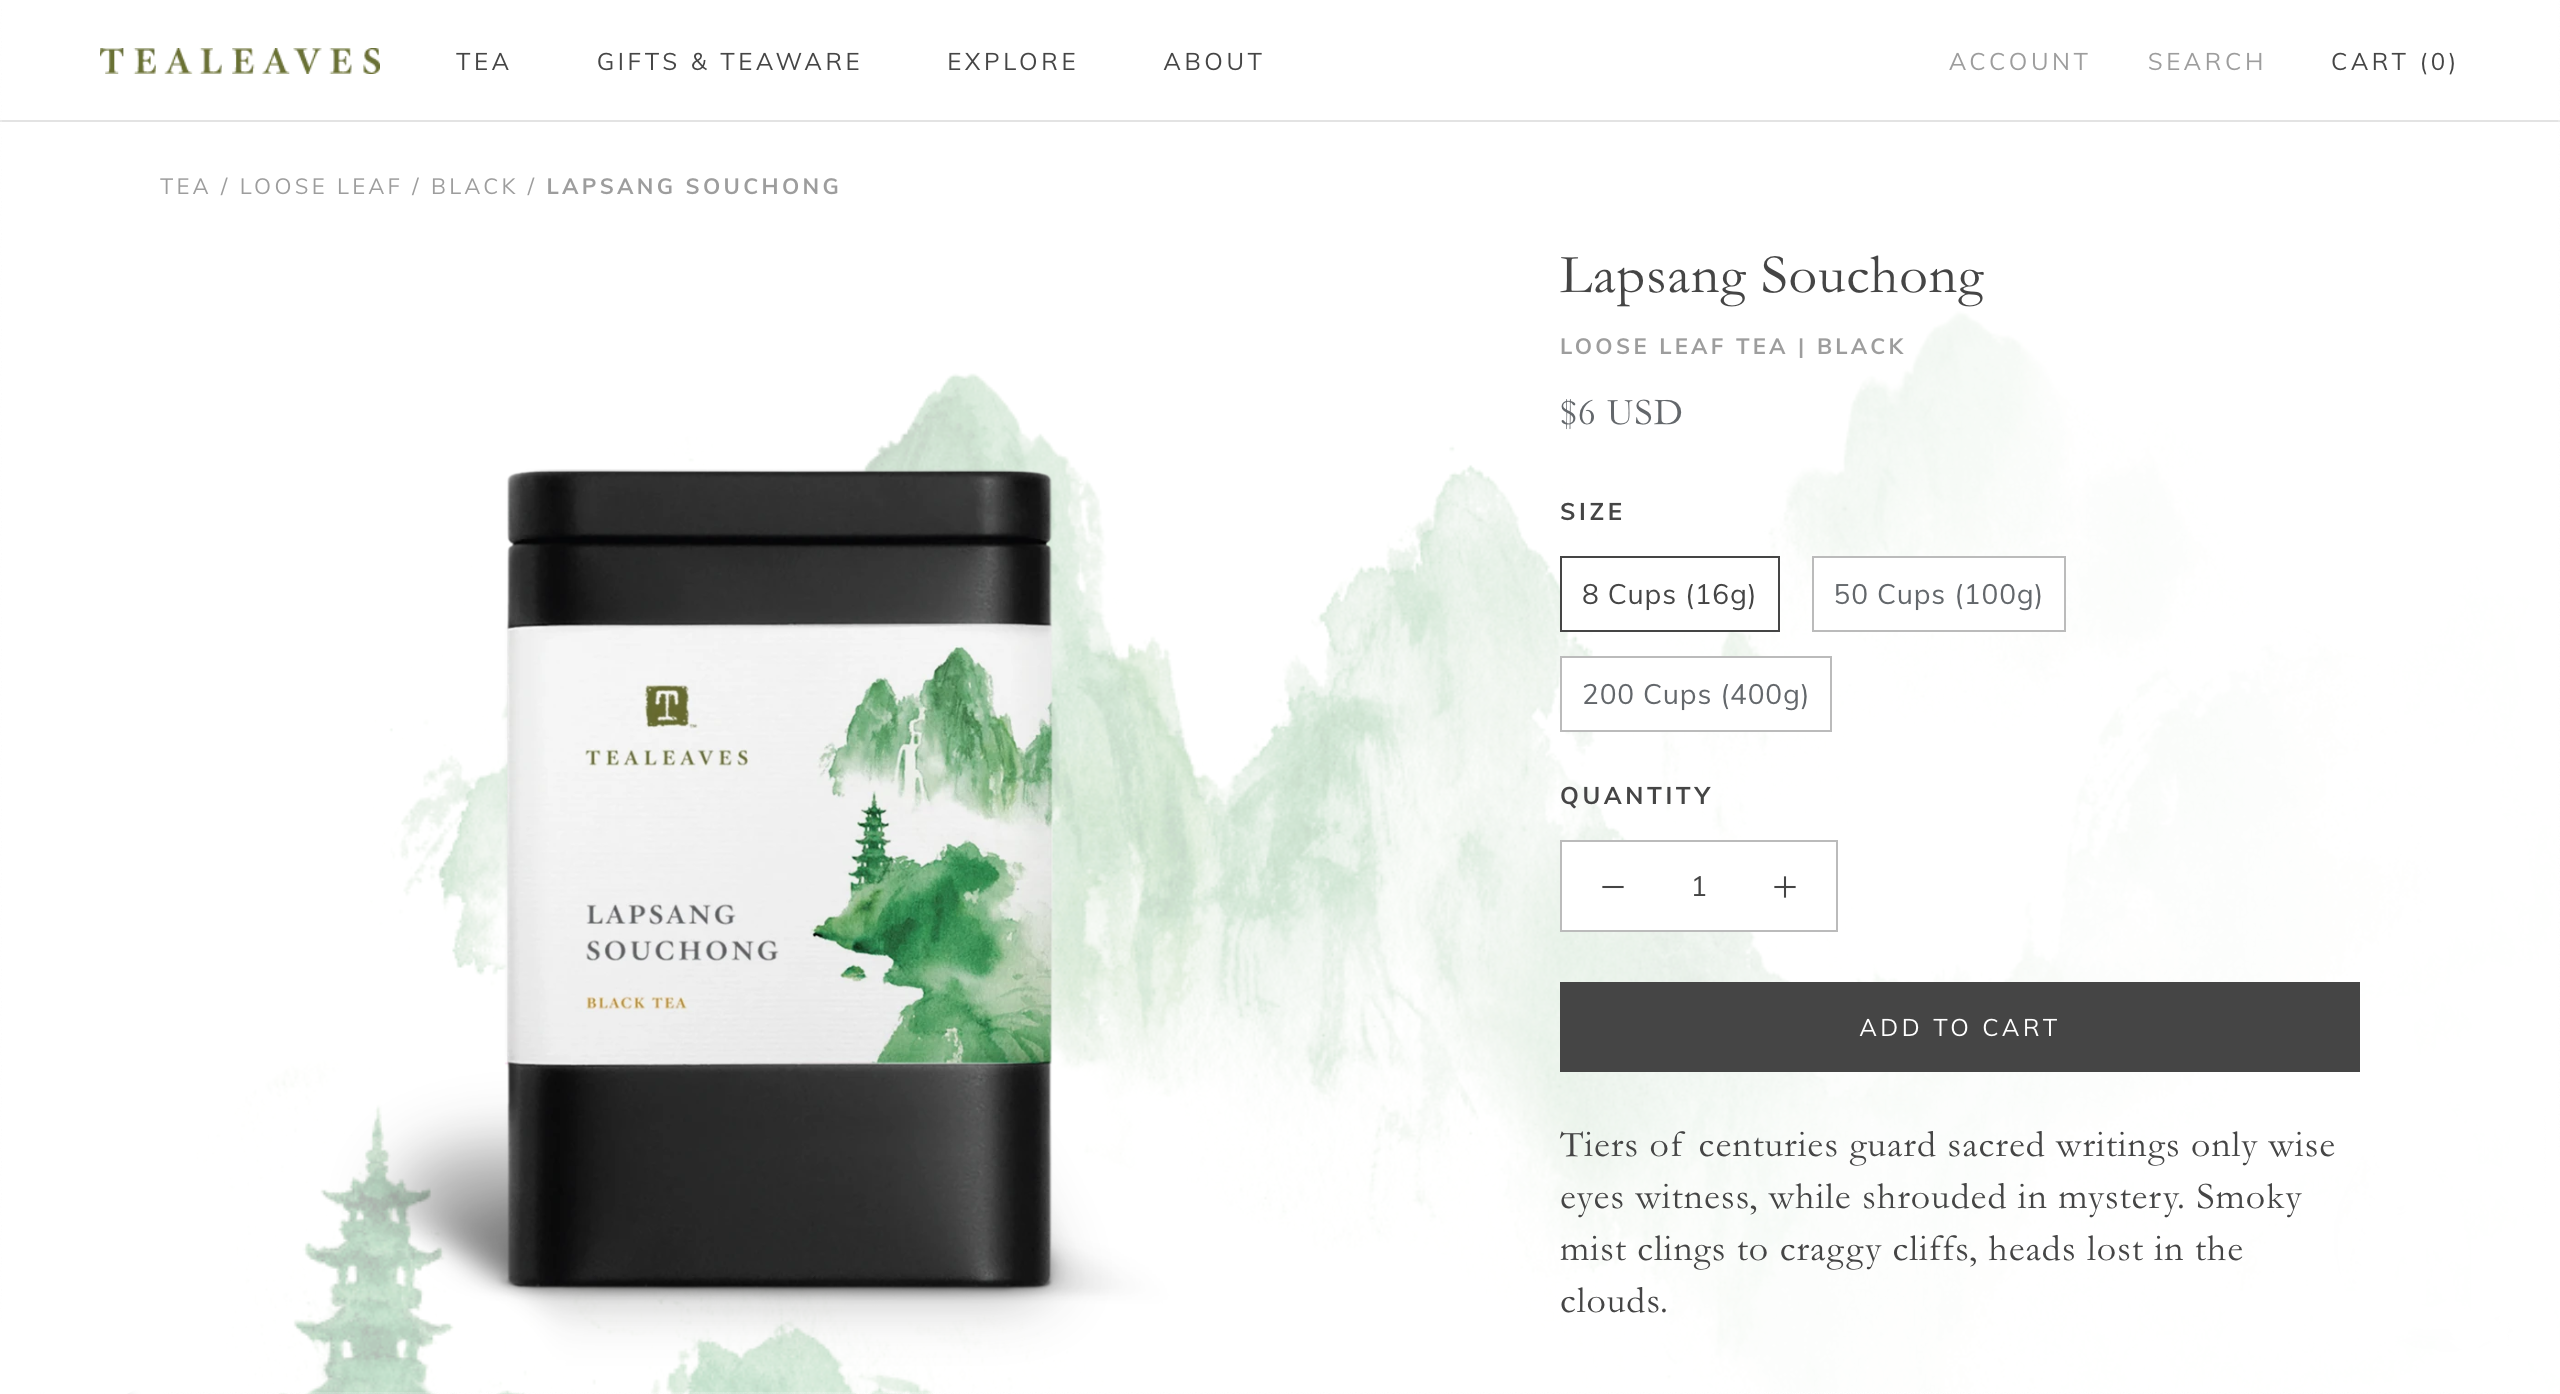 TEALEAVES product page on Shopify